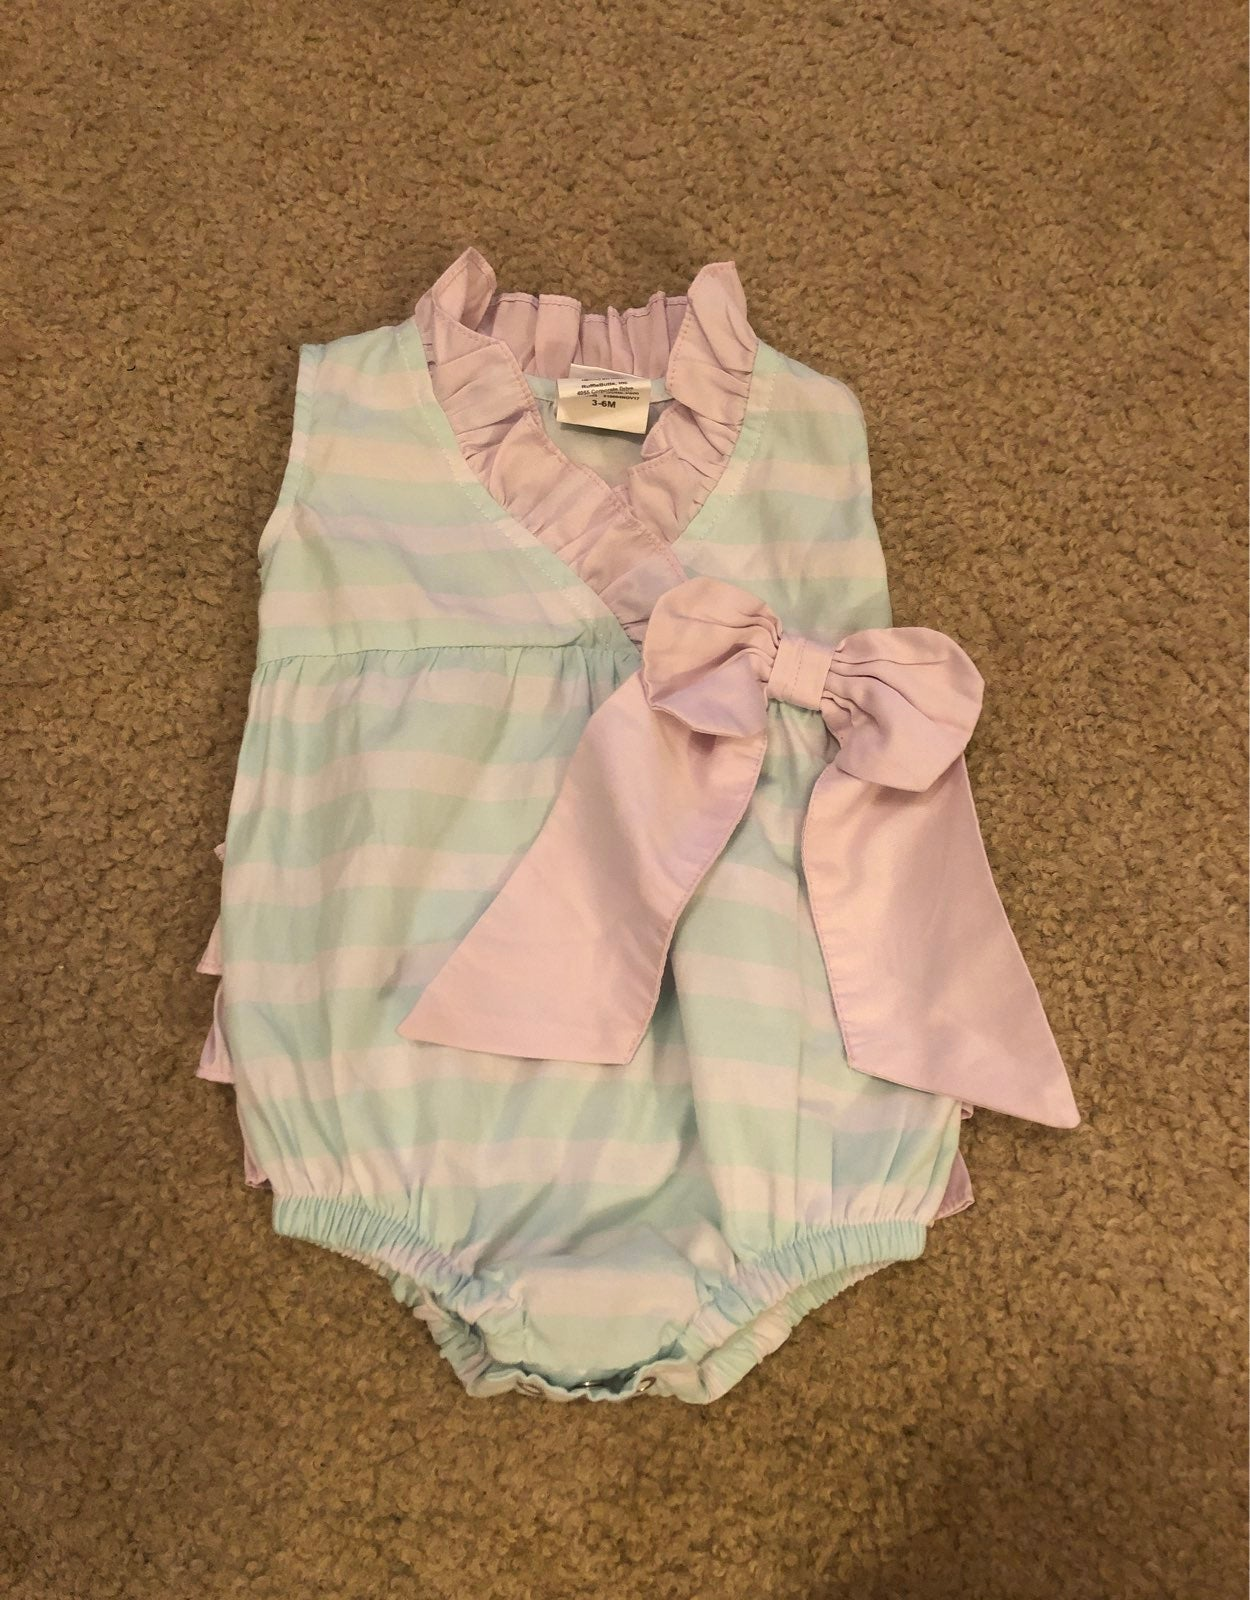 Ruffle Butts striped onesie 3-6 months